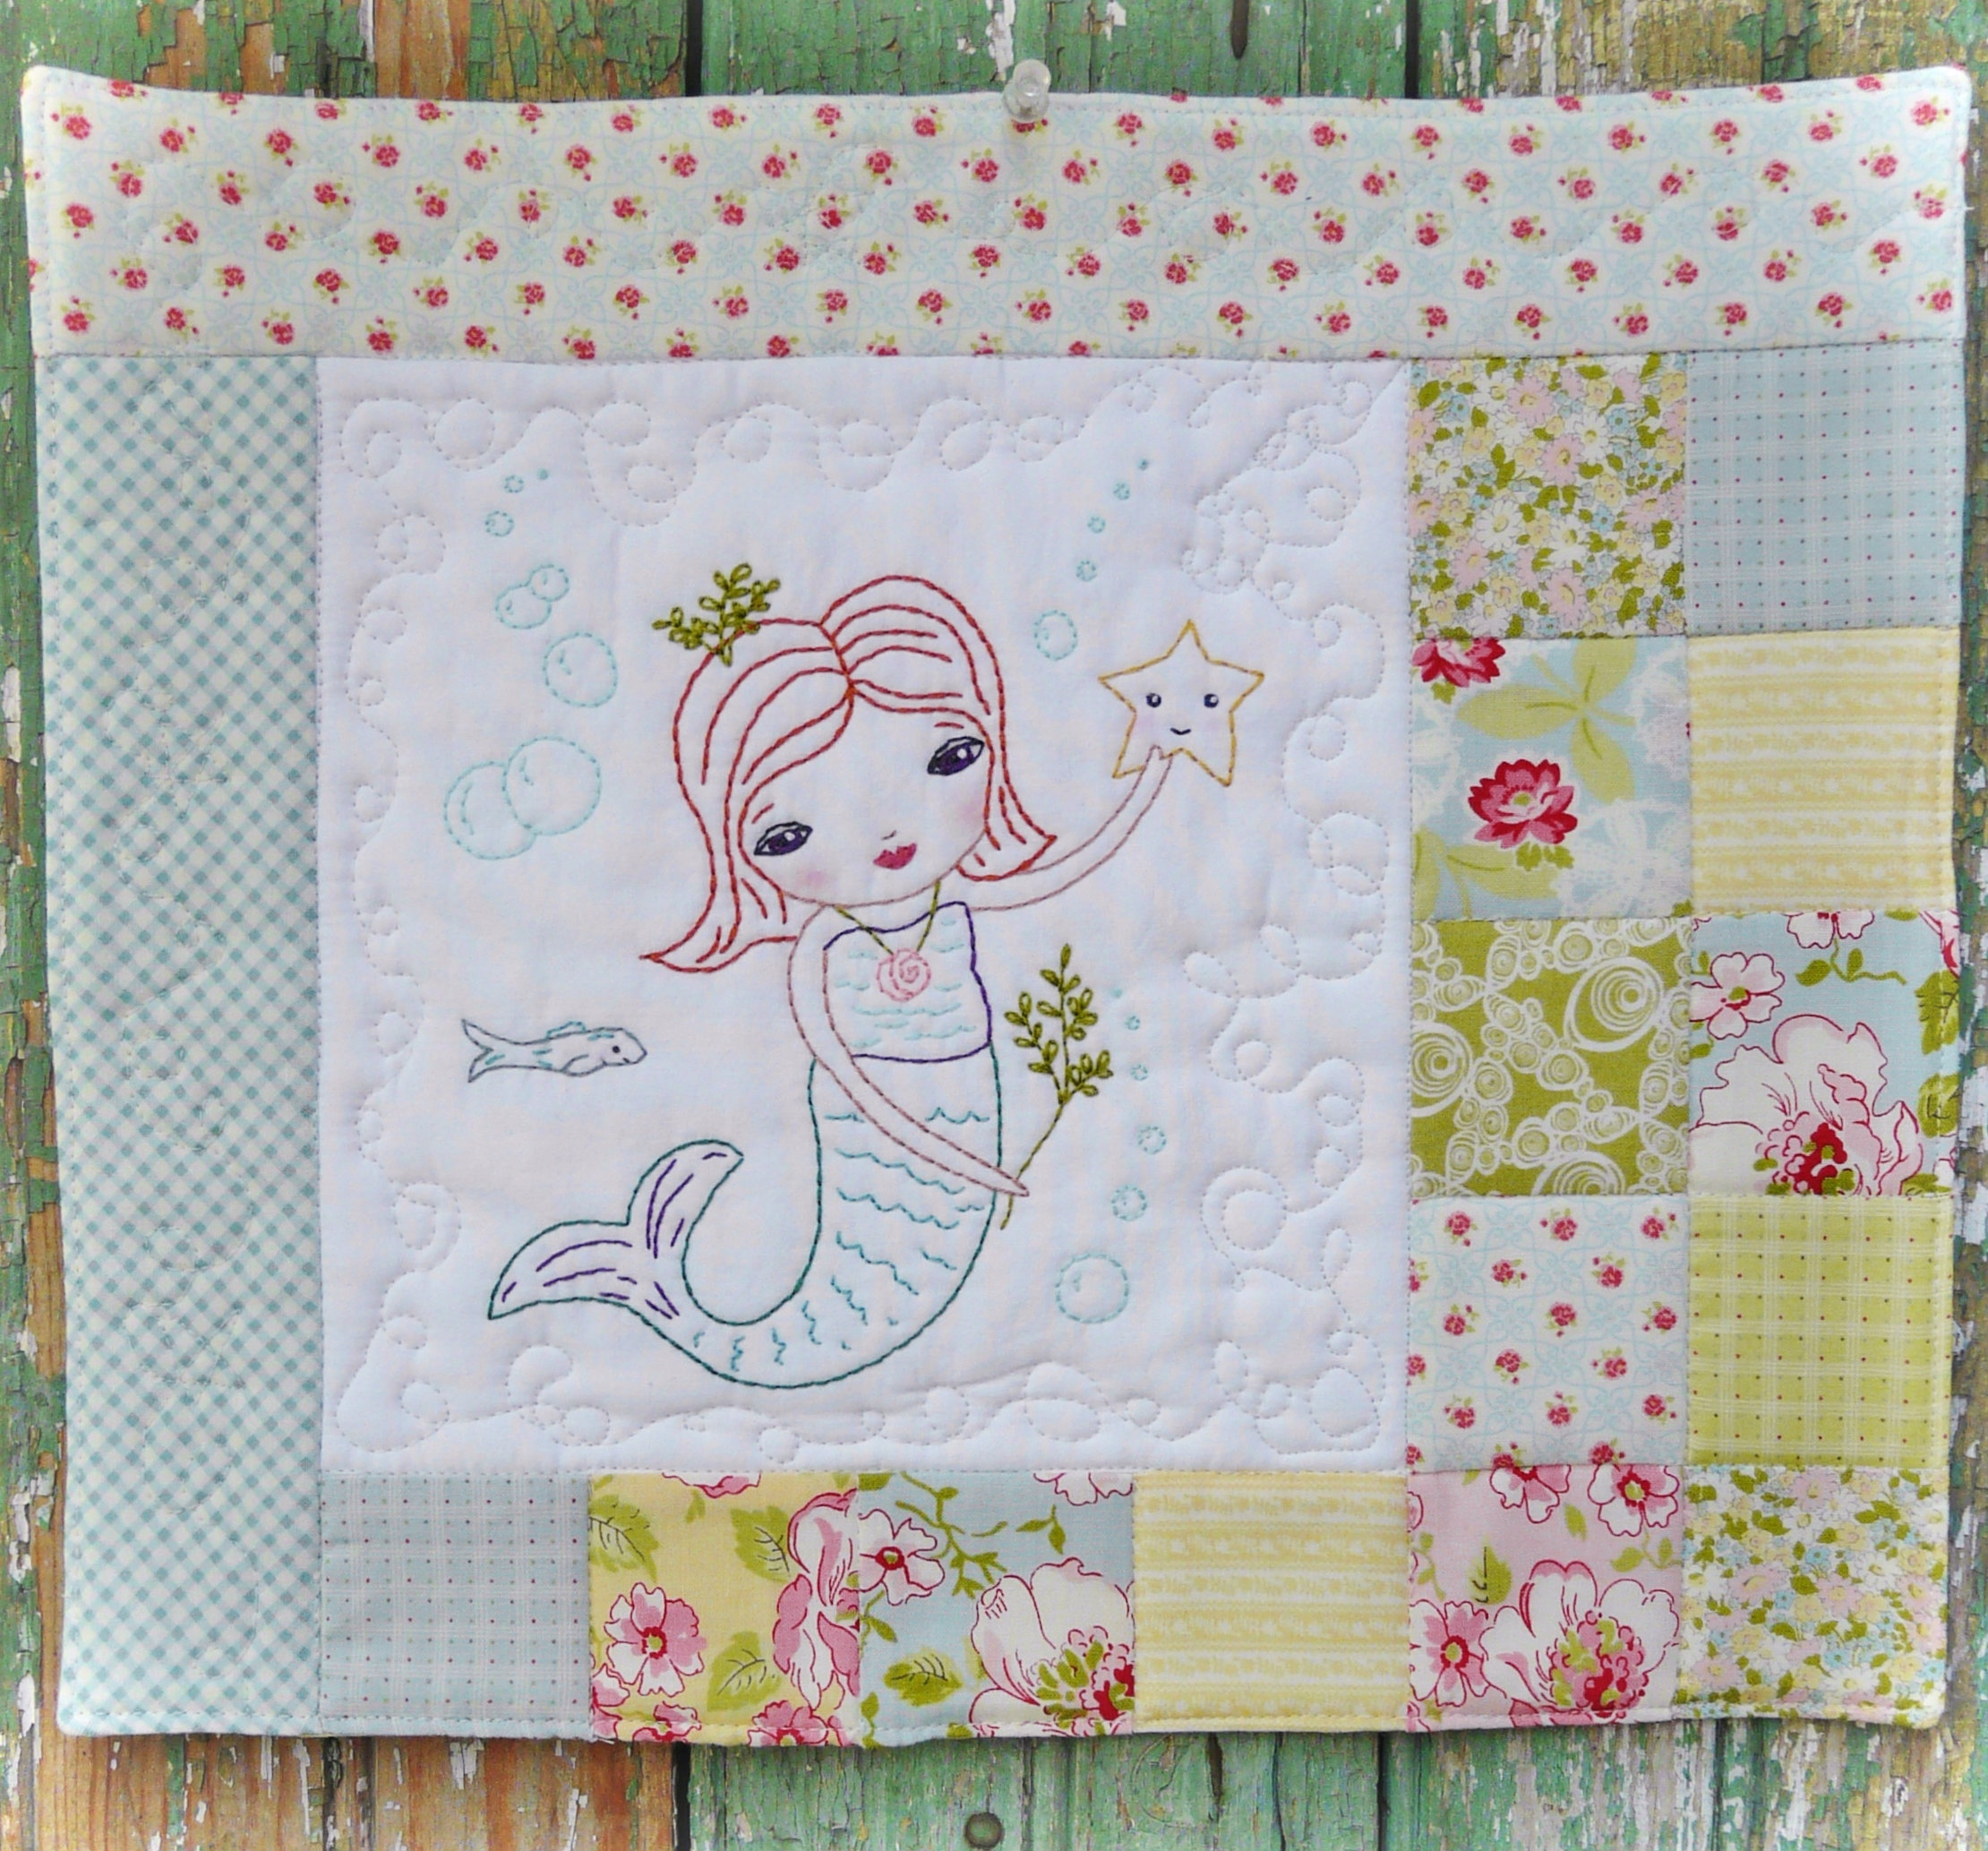 The merry mermaid embroidery mini quilt pattern